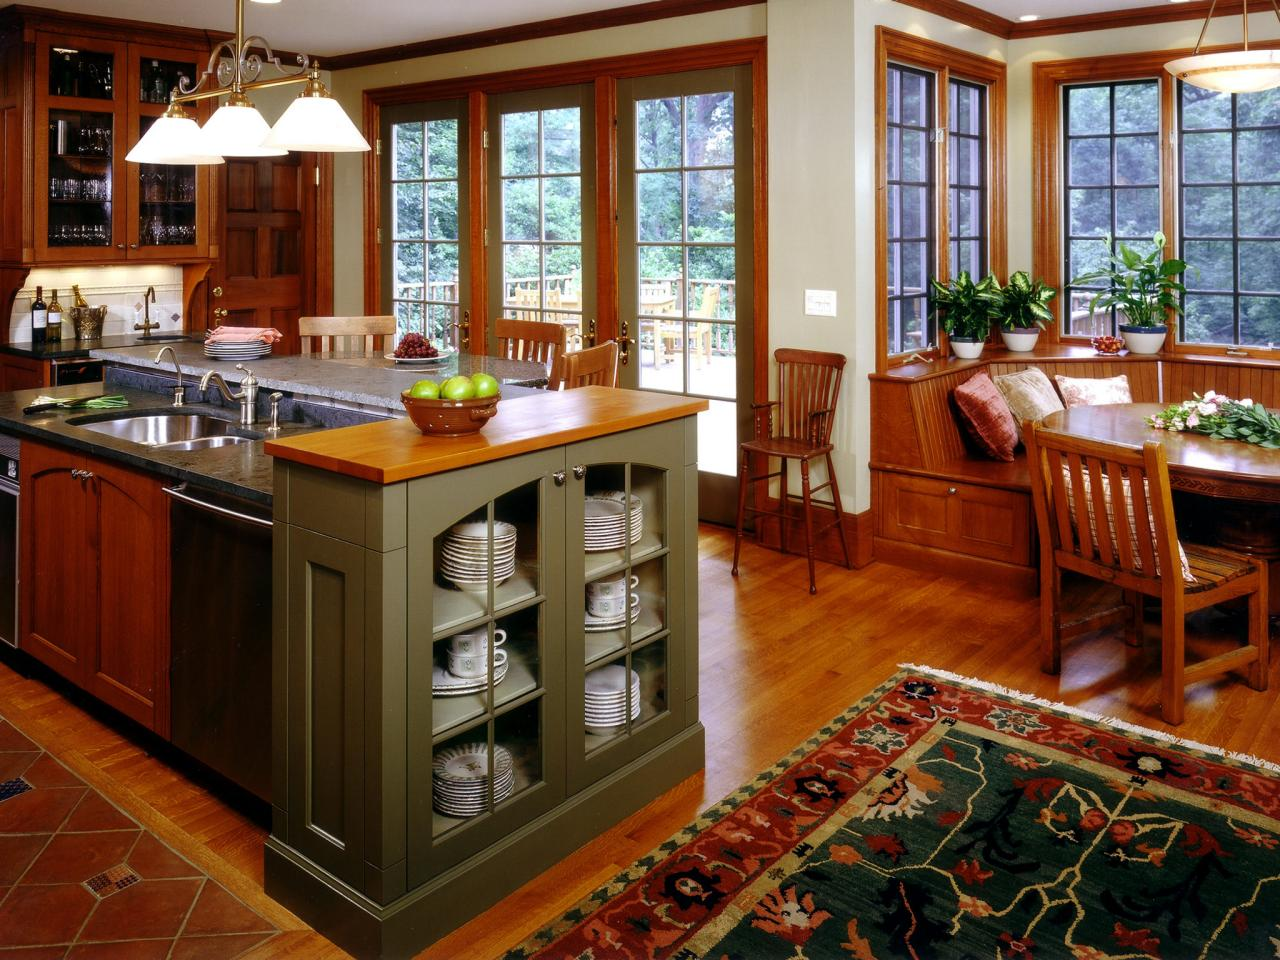 Craftsman & Mission-Style Kitchen Design: HGTV Pictures & Ideas  HGTV